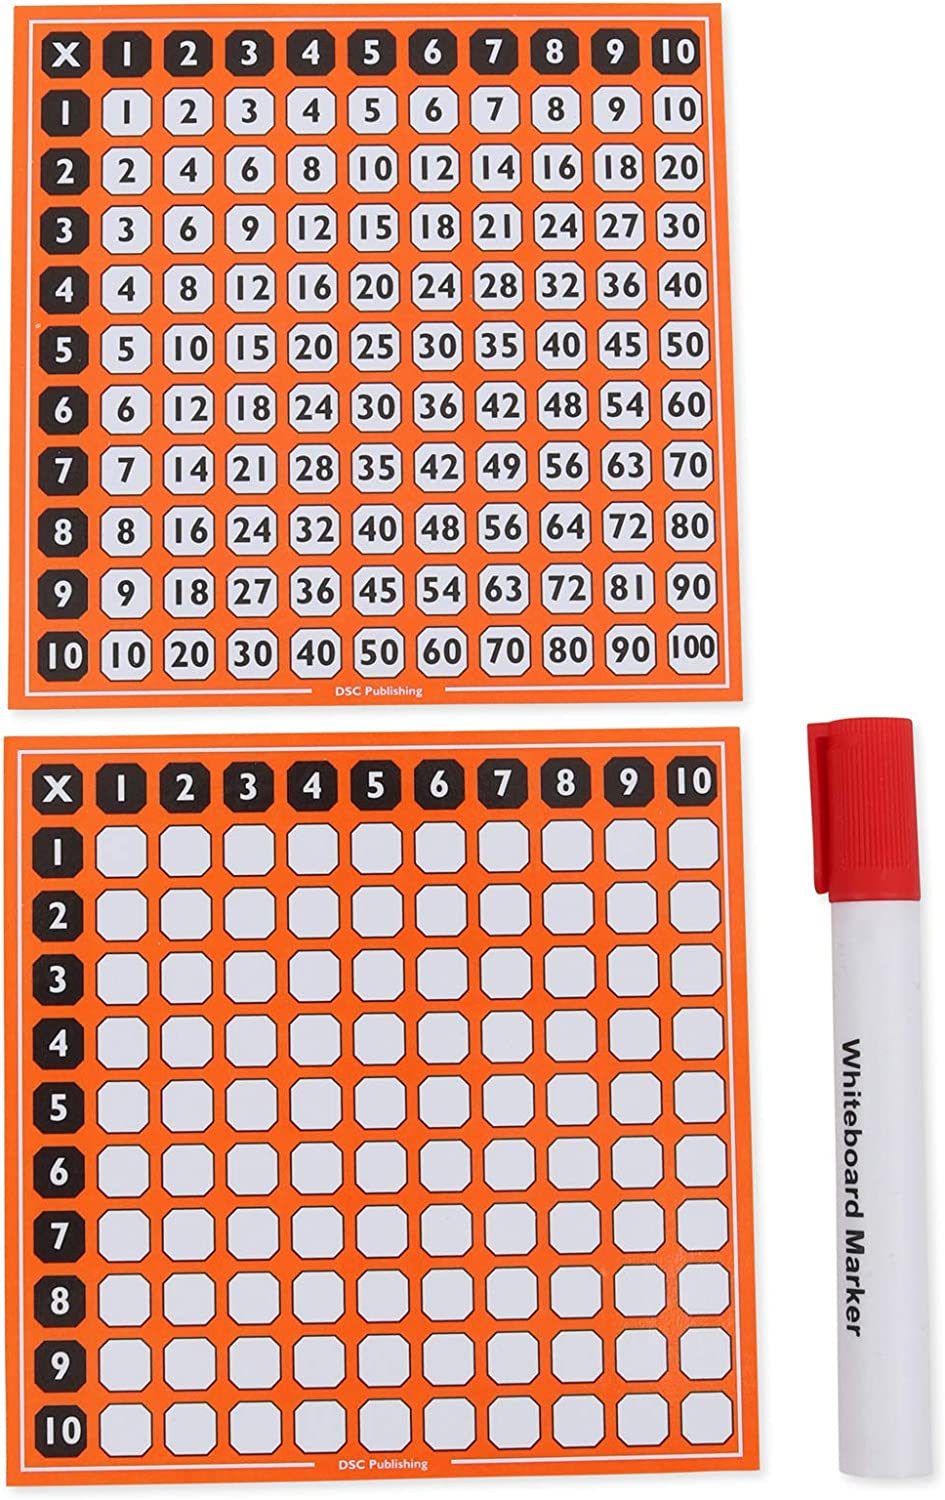 Grille De Tables De Multiplication 100 Carres Double Face Double